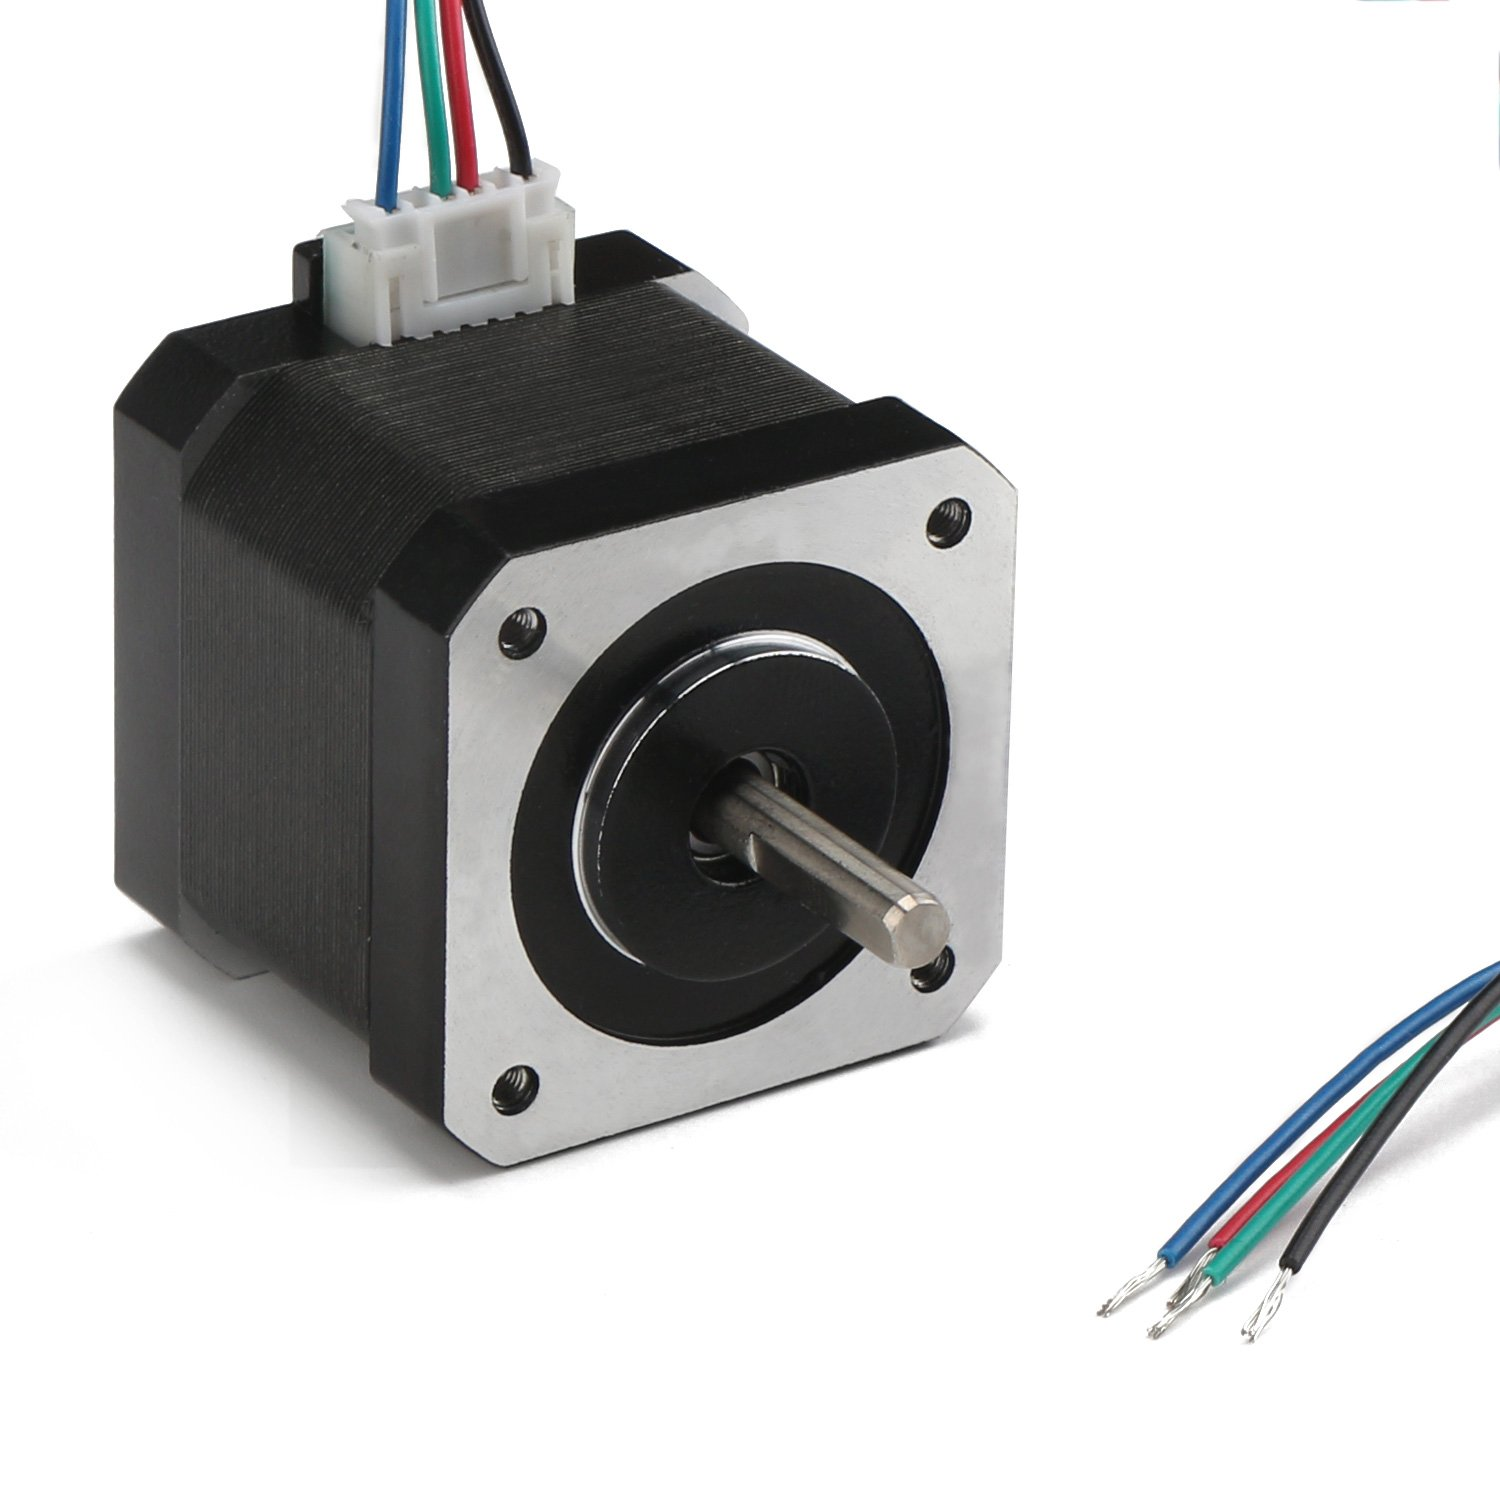 Nema 17 Stepper Motor Drok 40mm High Torque Bipolar Dc Step Three Phase Wiring X Y Z Kit 046nm Low Noise 42 2 Phrase Universal Electric For 3d Printer Laser